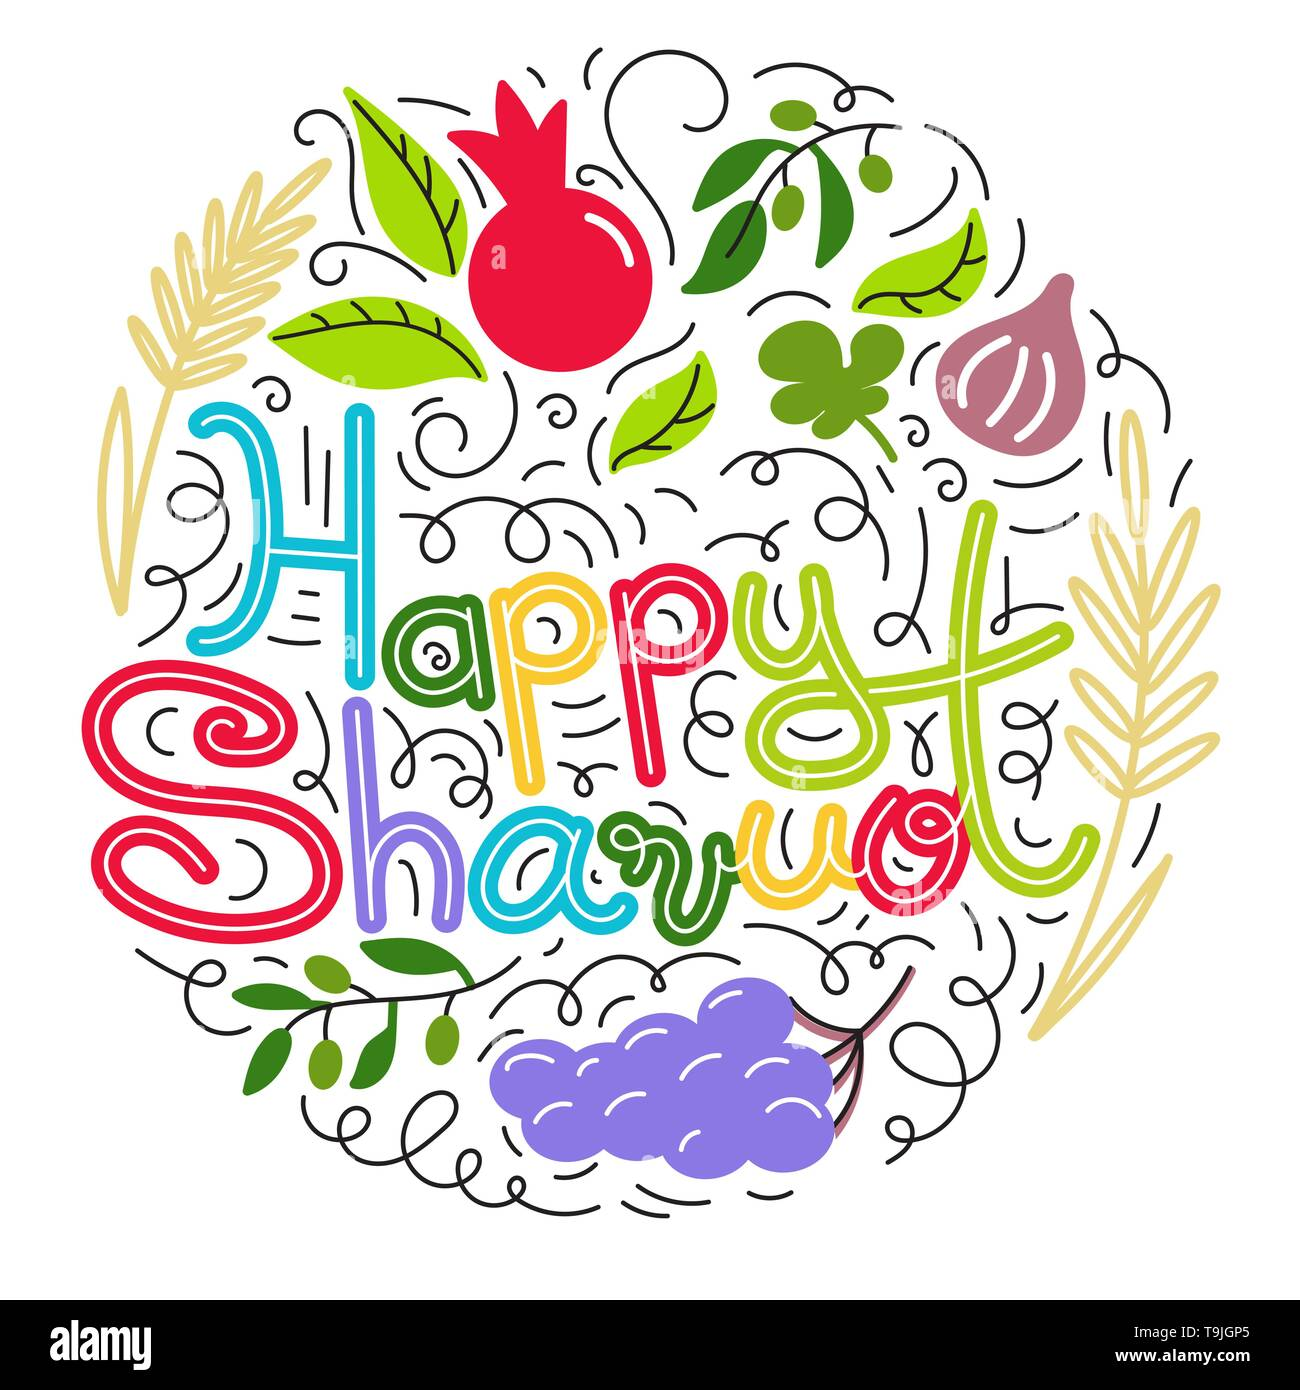 Happy Shavuot. Jewish holiday concept. Hand drawn doodle style. Colorful vector illustration. Isolated on white background - Stock Image